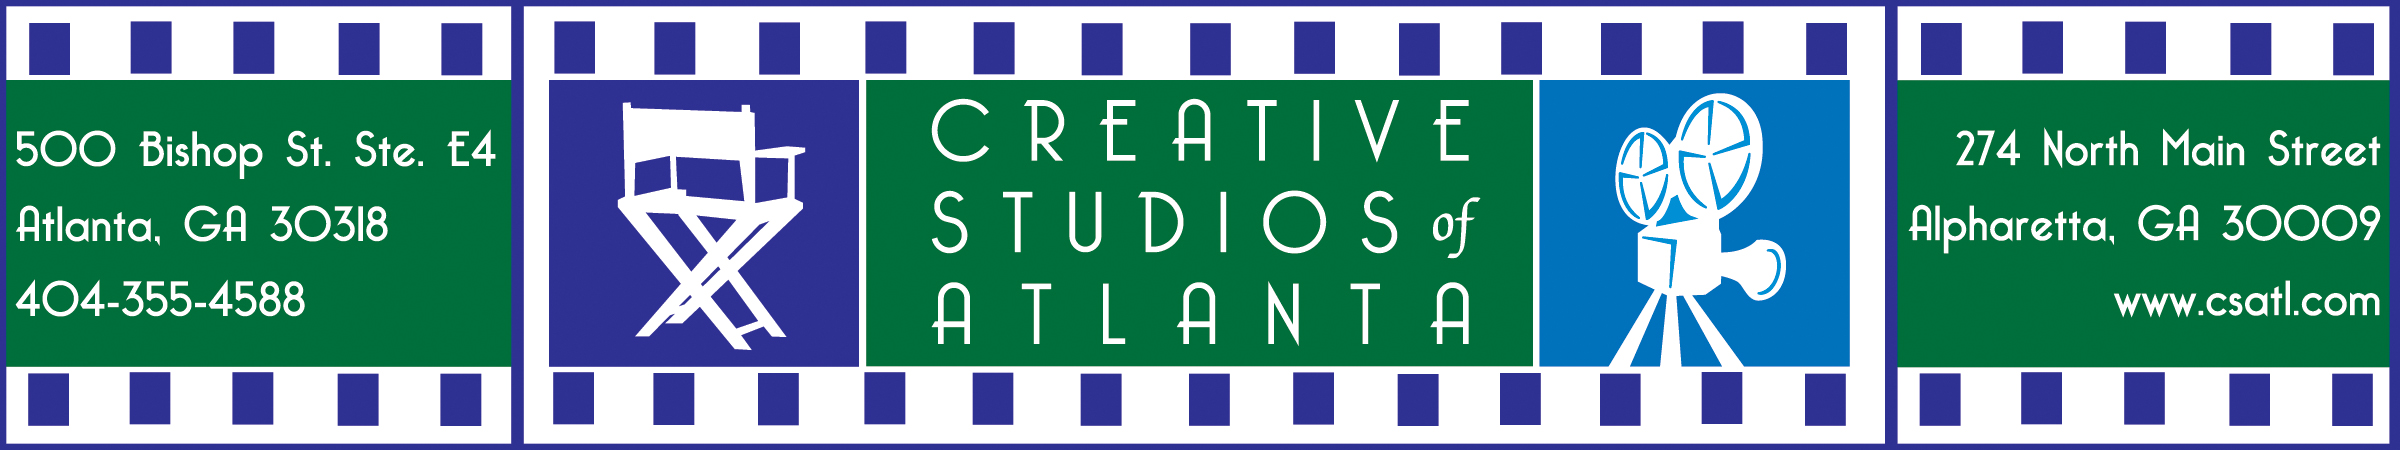 Creative Studios of Atlanta Q&A